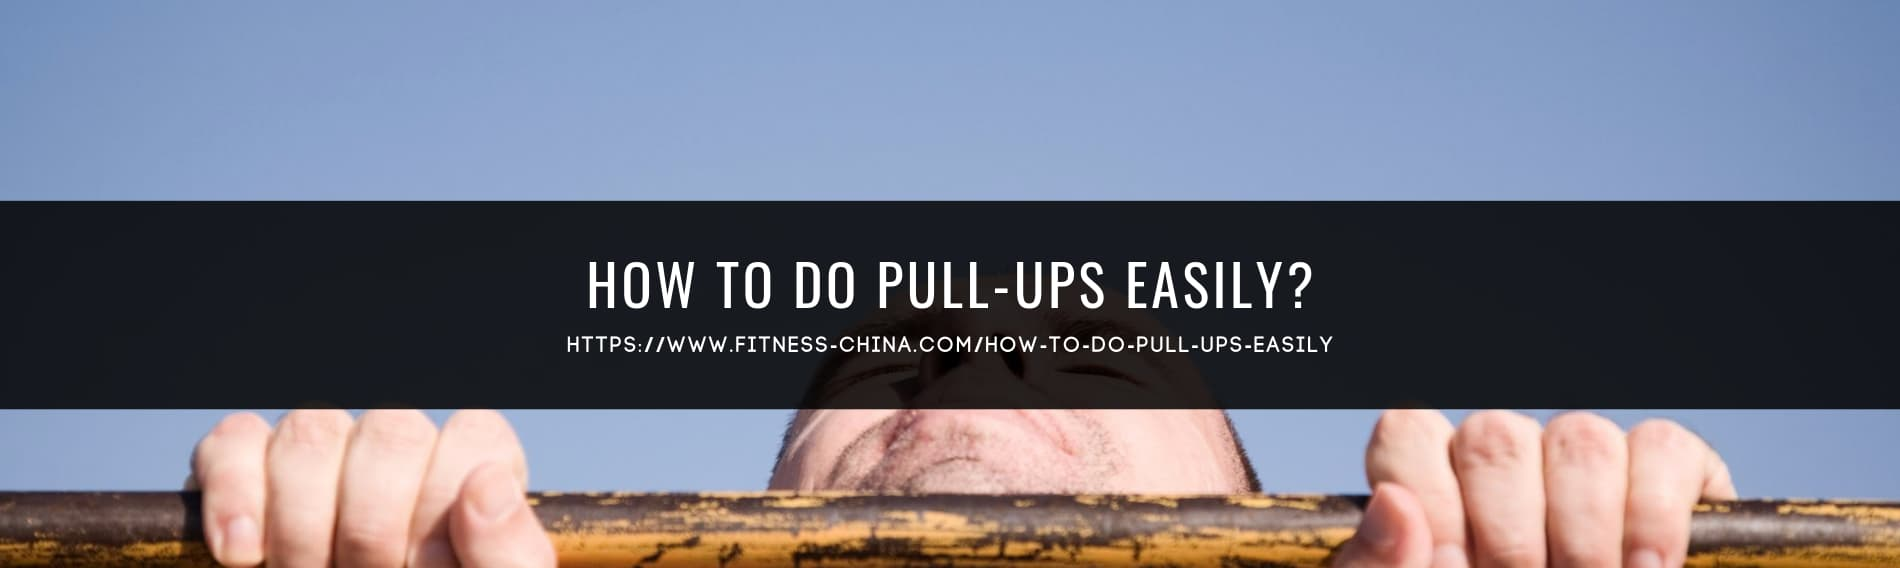 How to do pull-ups easily?